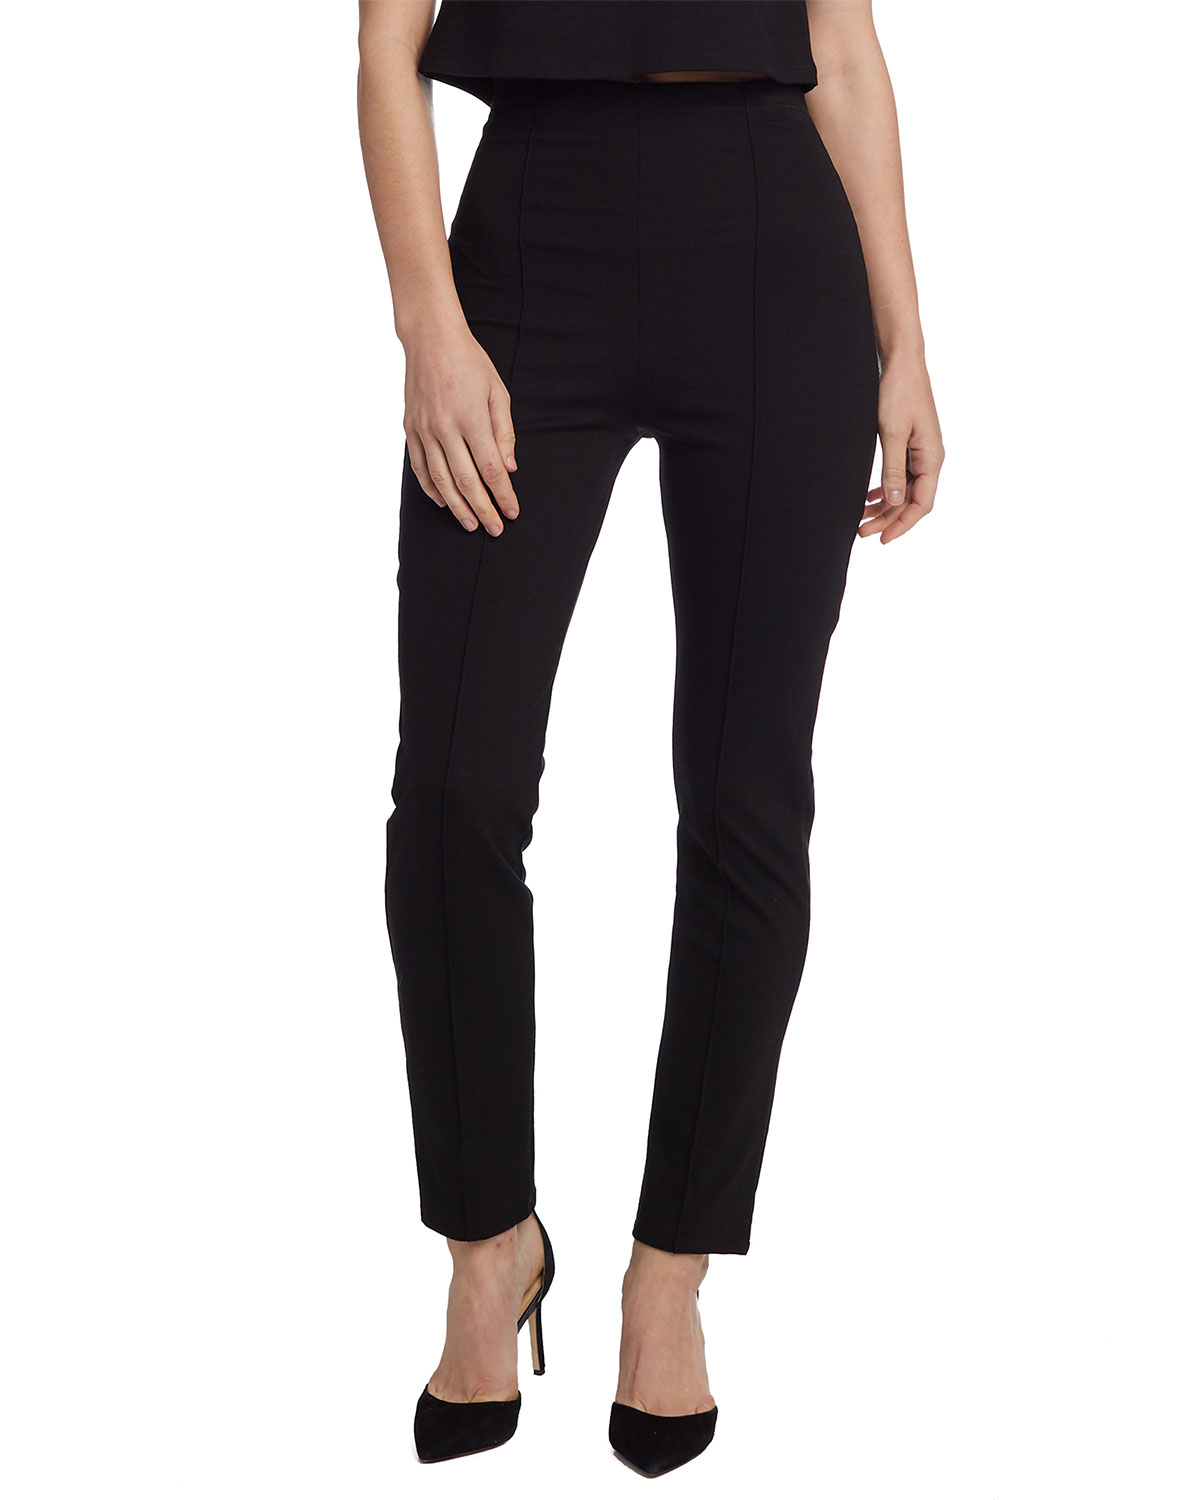 aee055c04 High-Waist Slim Leg Ponte Pants